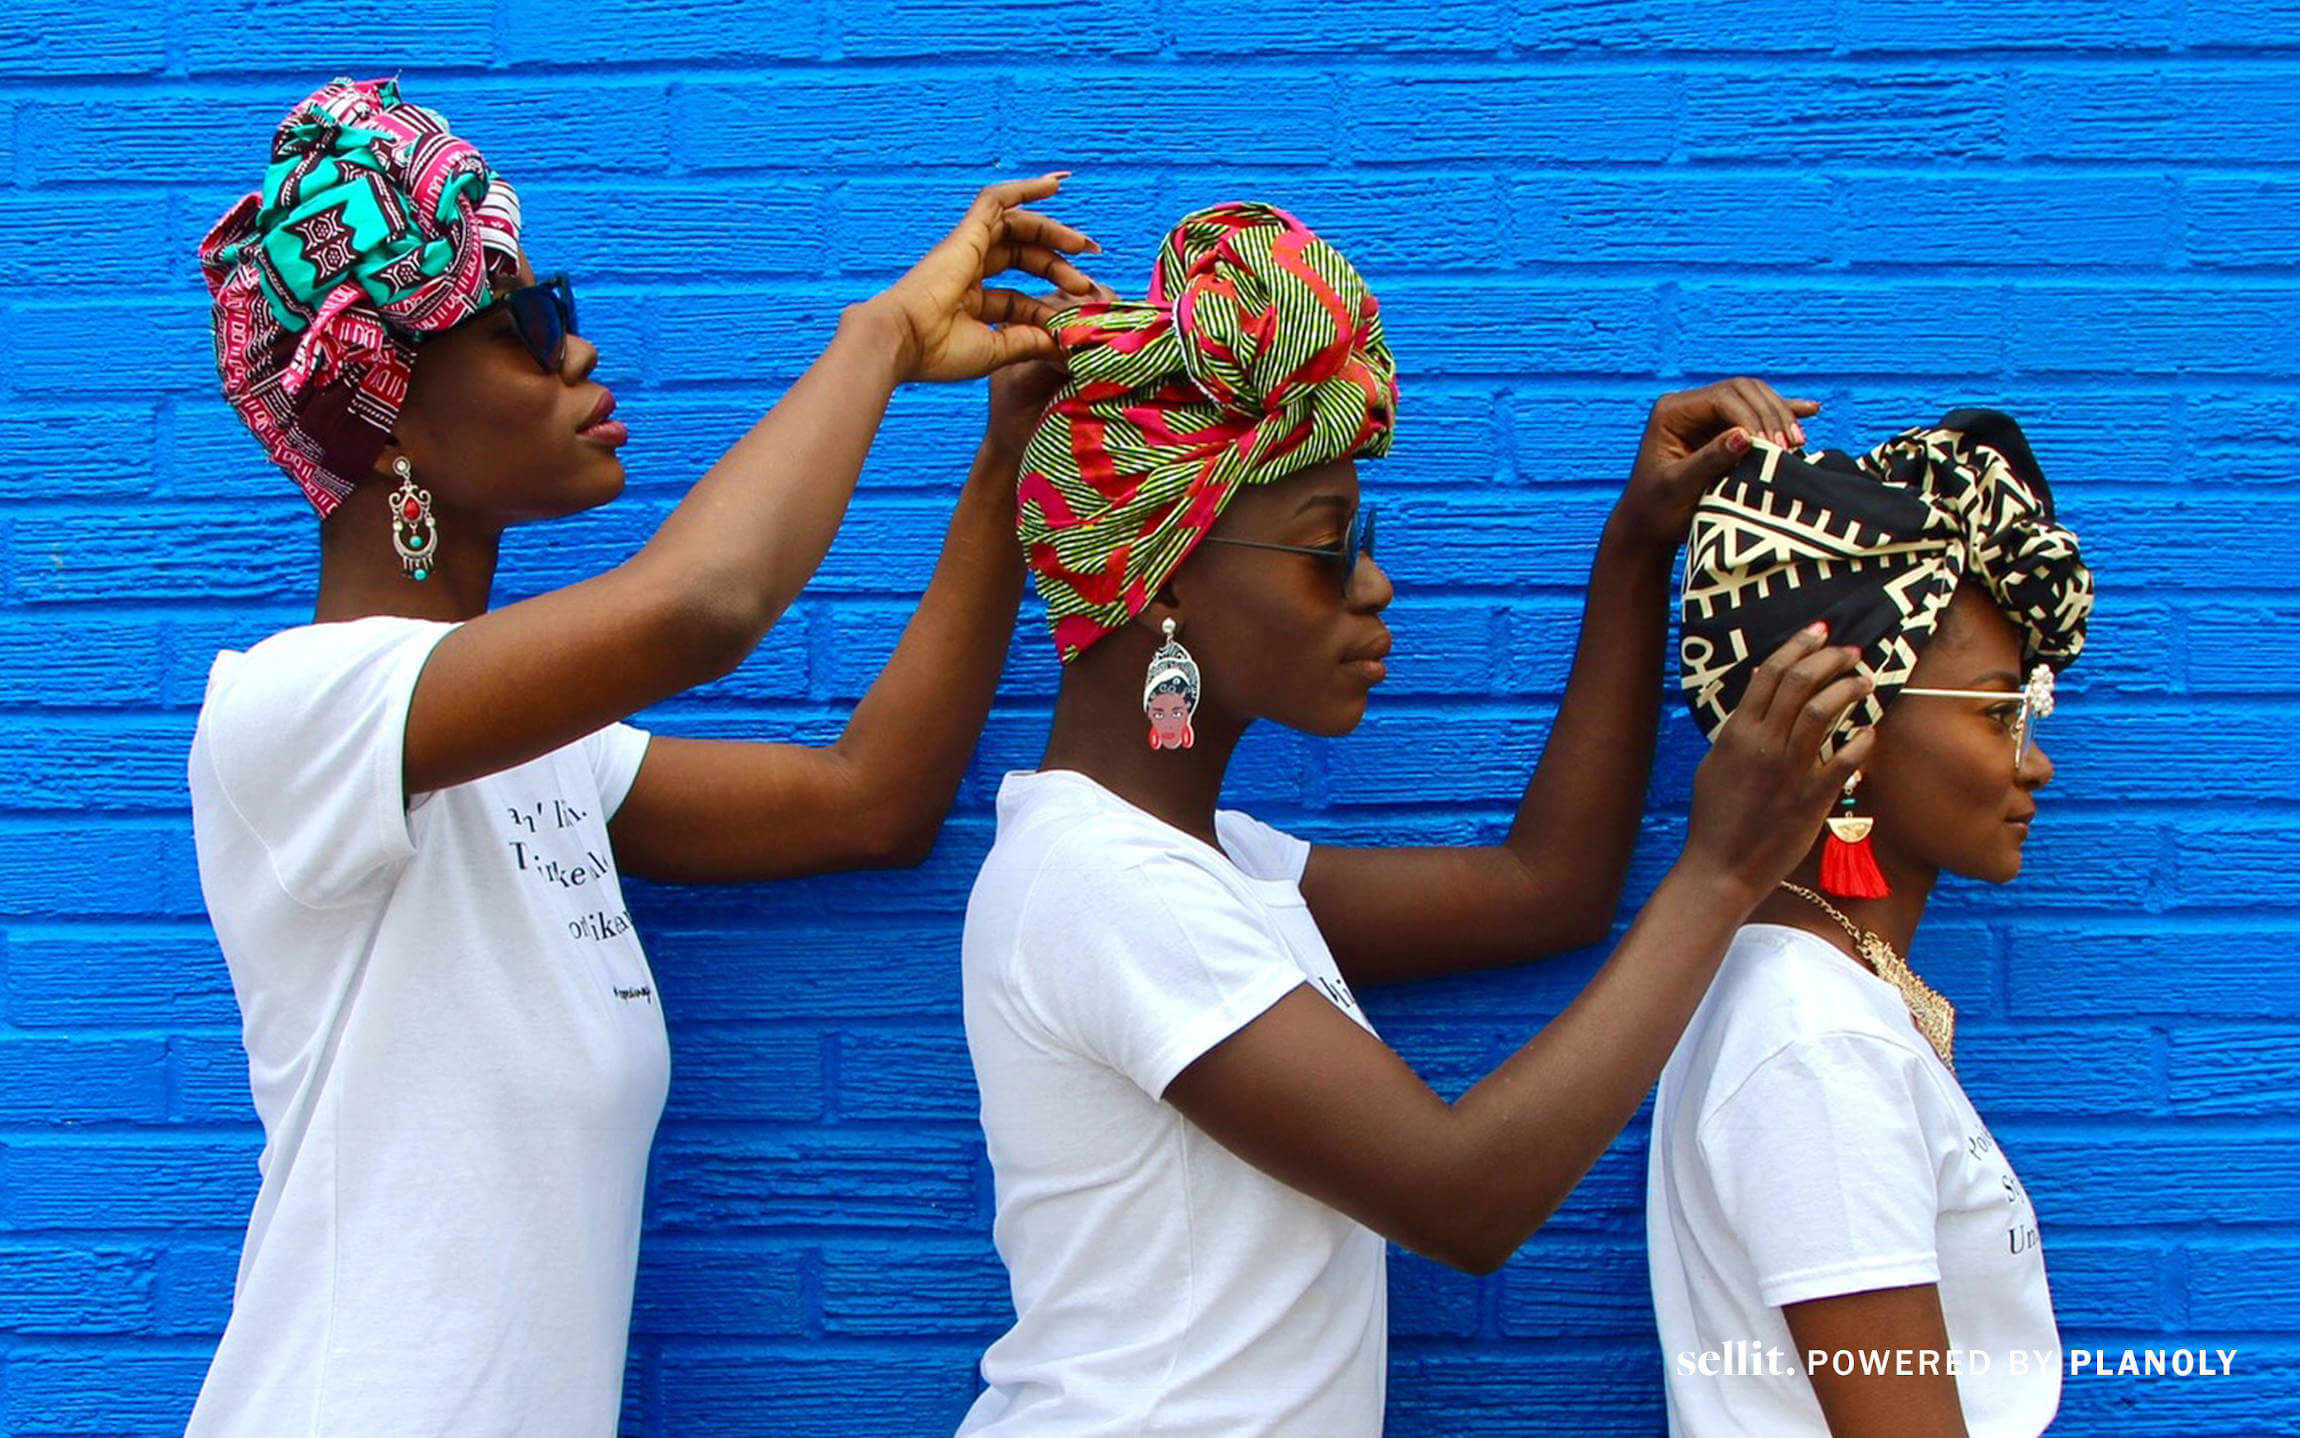 Draped Serves Up Women's Empowerment One Headwrap at a Time